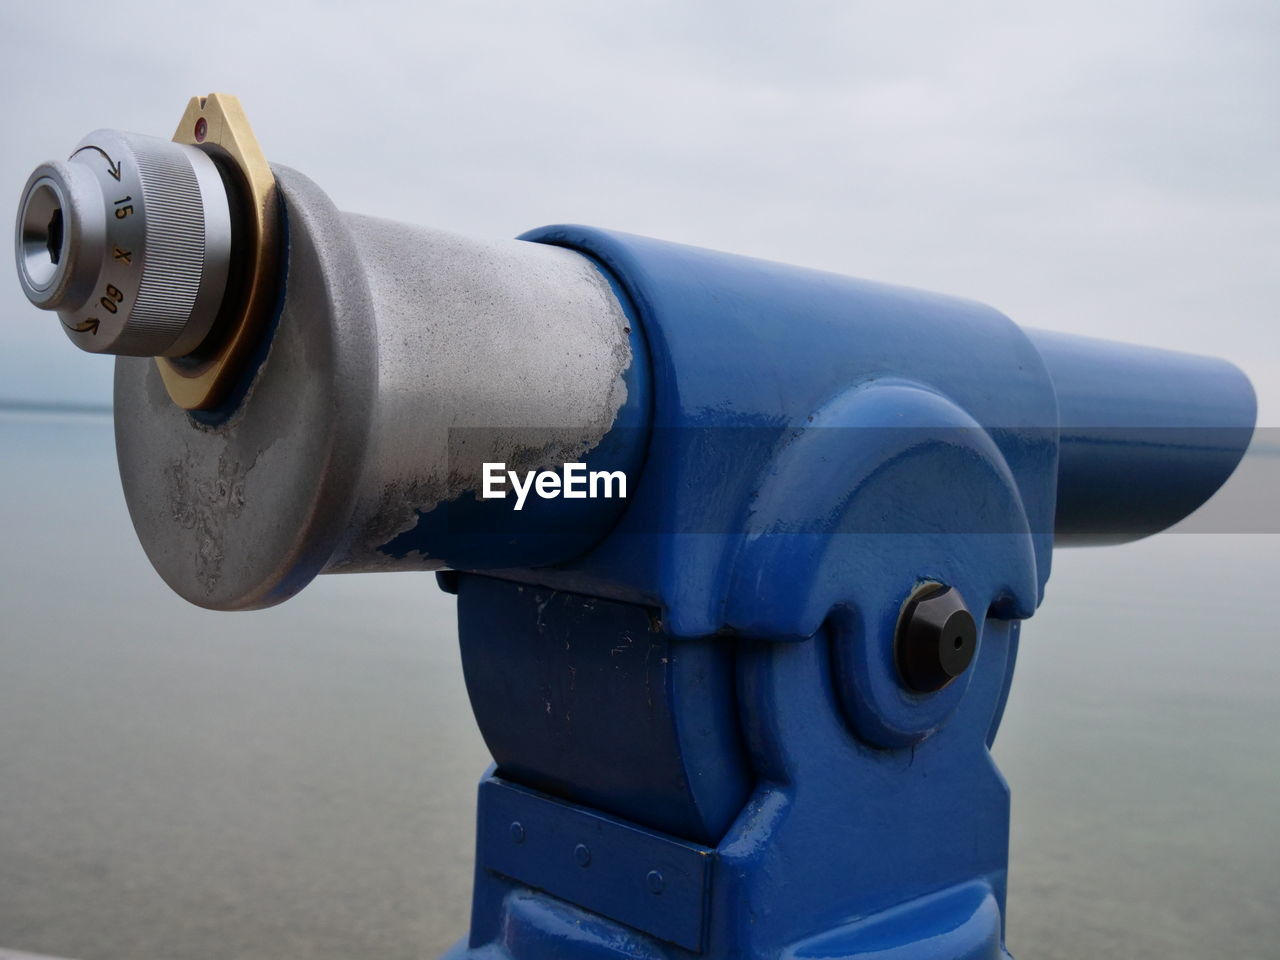 binoculars, water, coin operated, metal, coin-operated binoculars, day, focus on foreground, sea, close-up, no people, nature, sky, security, outdoors, surveillance, blue, beach, technology, land, silver colored, hand-held telescope